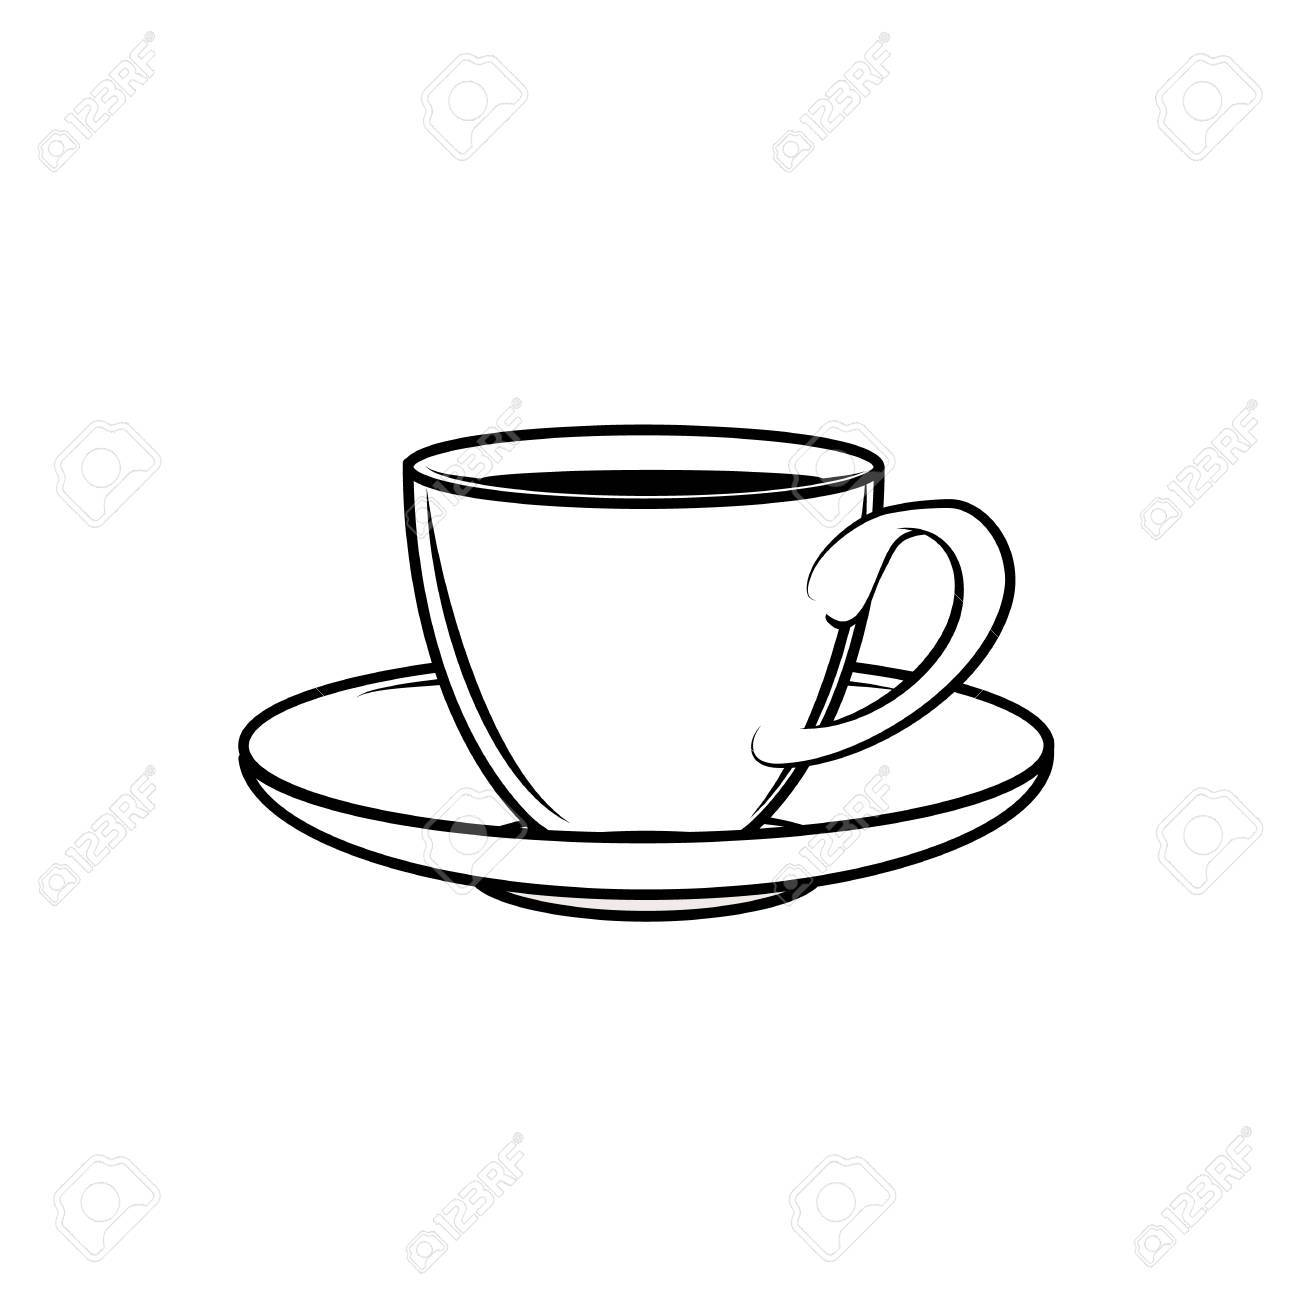 Icon For Web Line Cup Saucer Porcelain Of Tea Set Royalty Free Cliparts Vectors And Stock Illustration Image 60554432